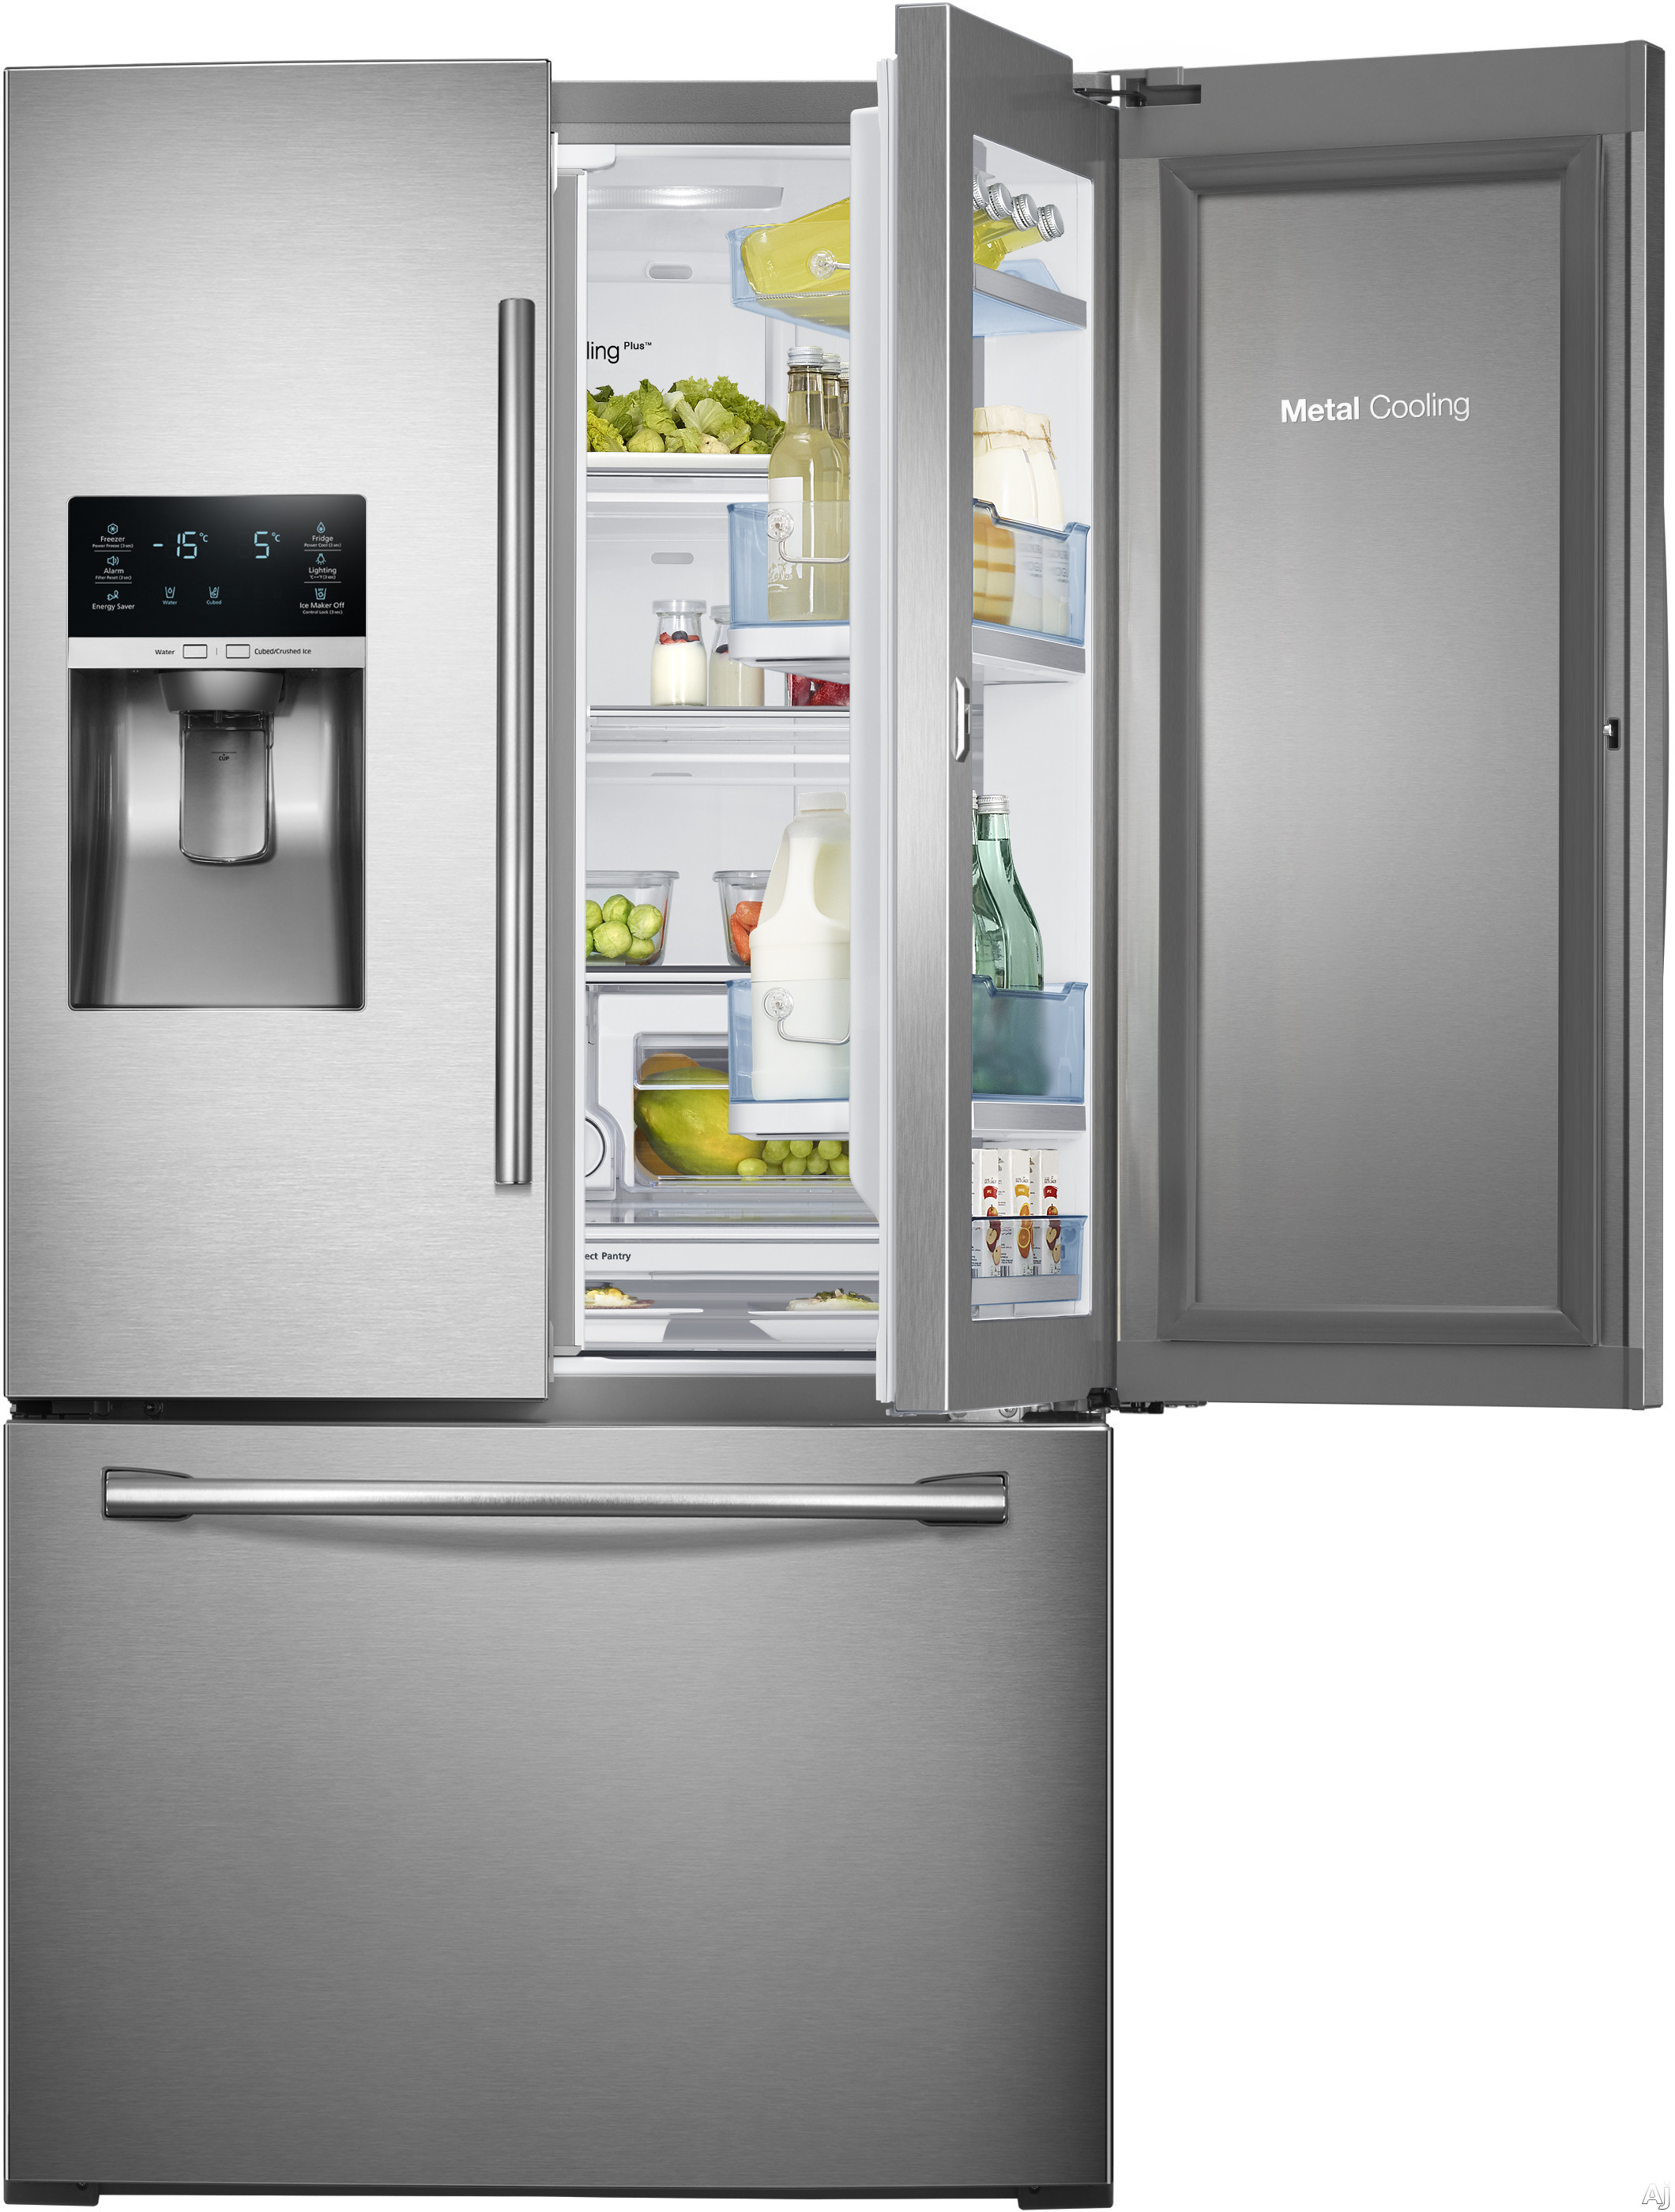 2800 #989233 Samsung RF28HDEDTSR 27.8 Cu. Ft. French Door Refrigerator With 5  image Refrigerator French Doors 34832120